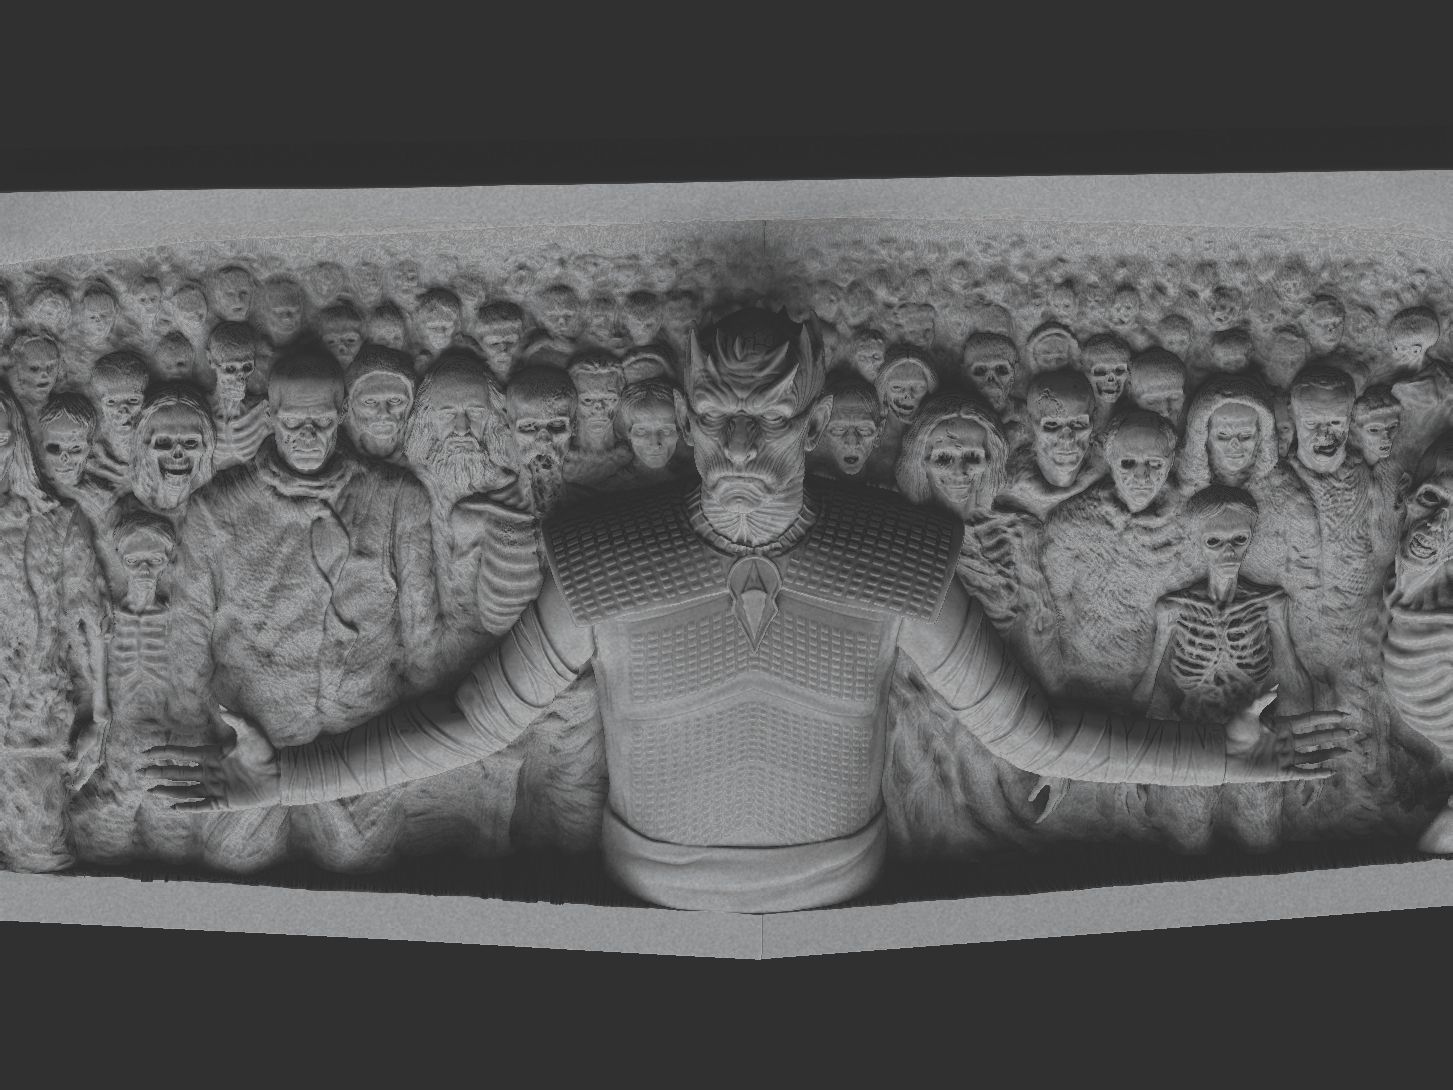 ZBrush Docu666ment.jpg Download STL file Game of Thrones - Night King - Hardhome Relief • 3D printing model, brkhy